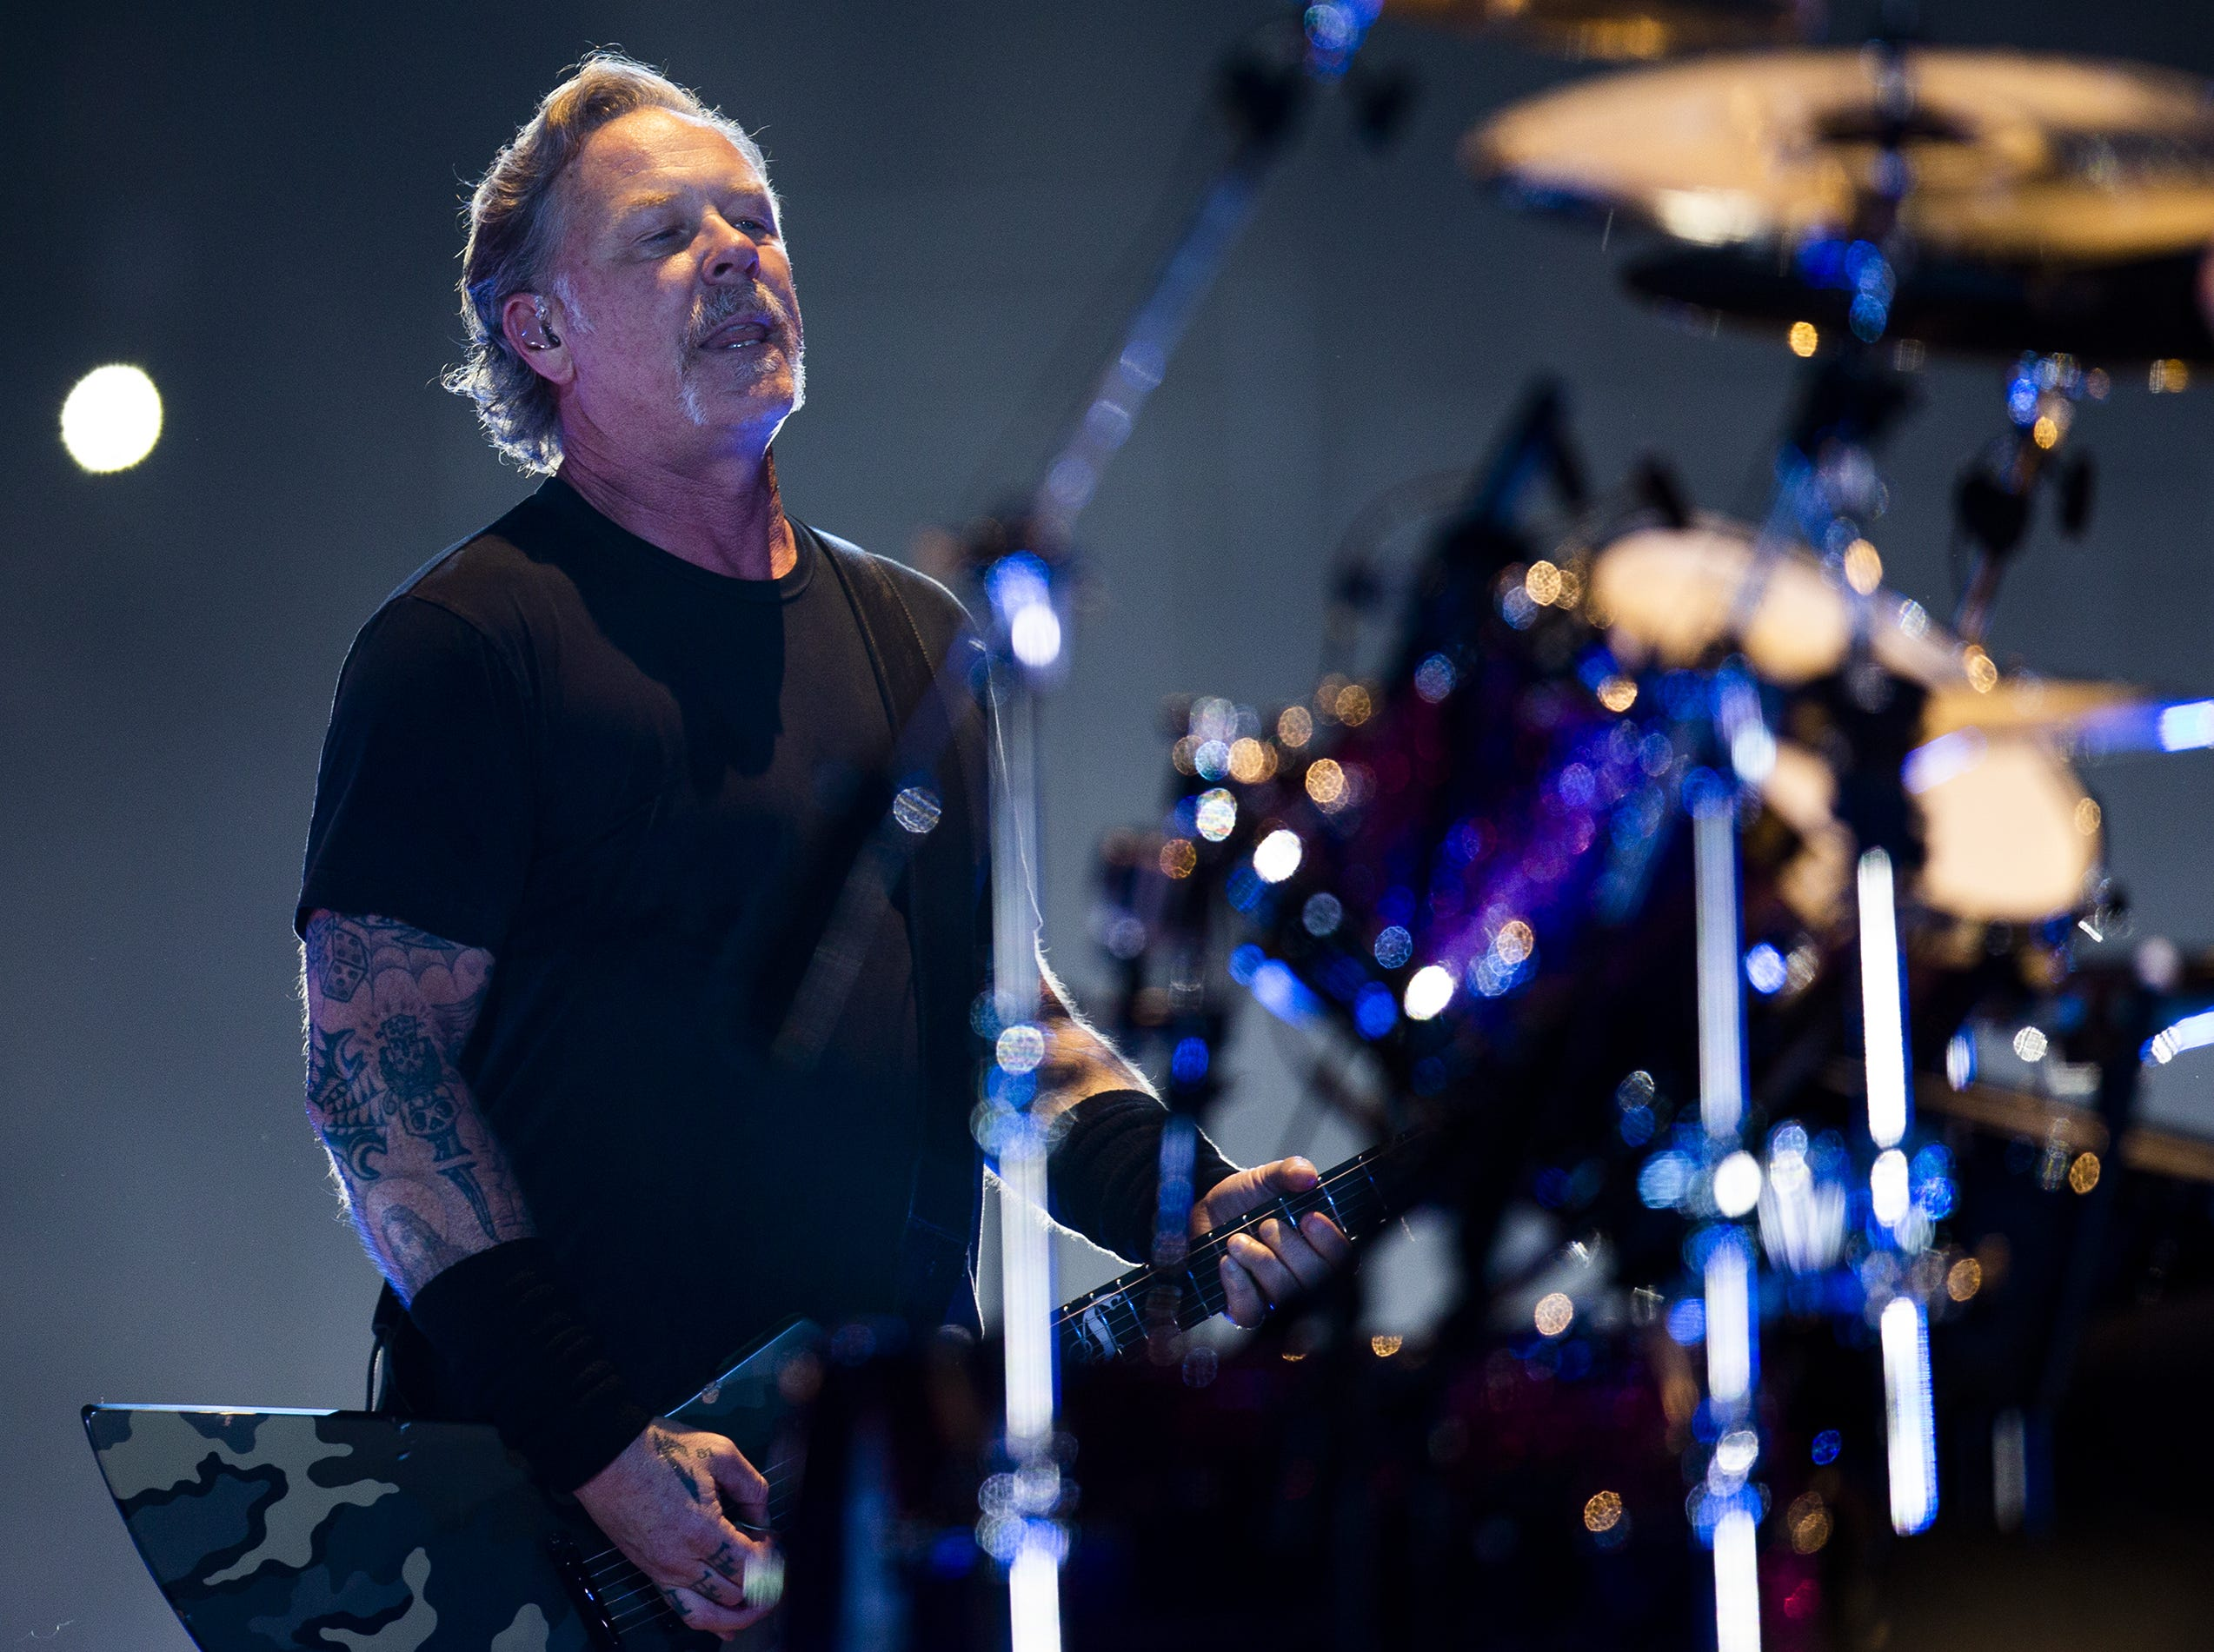 James Hetfield, Metallica's lead vocalist, performs at the KFC Yum Center in downtown Louisville, Ky. on Saturday, March 9, 2019.